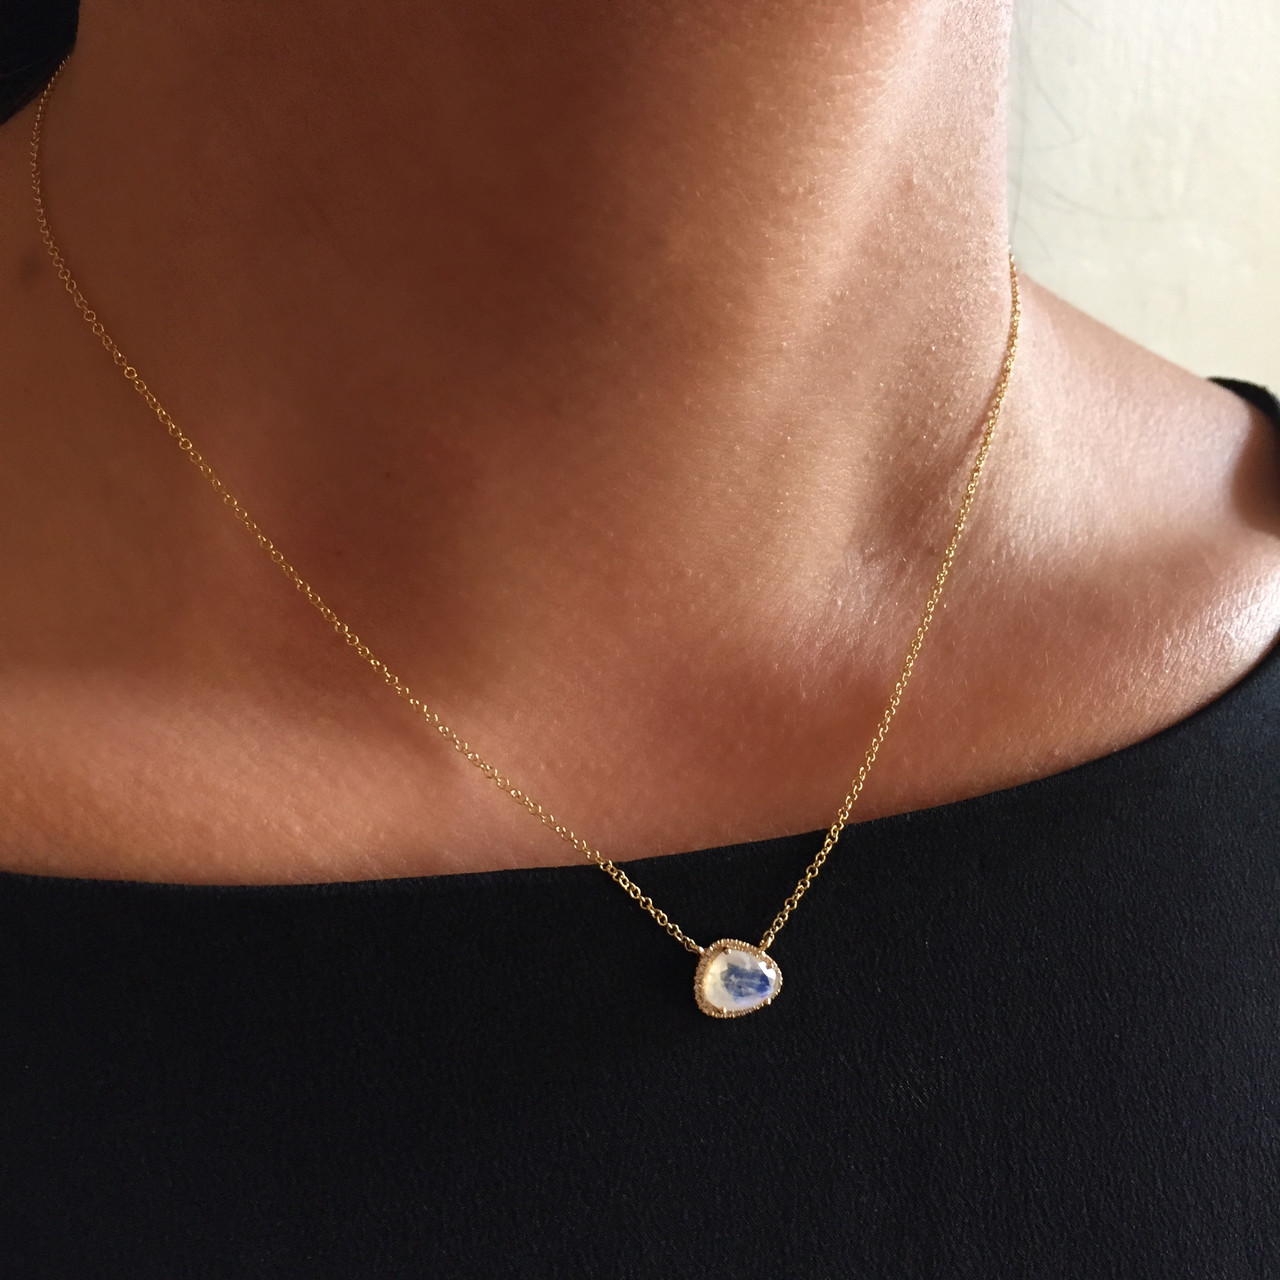 Diamond moonstone necklace